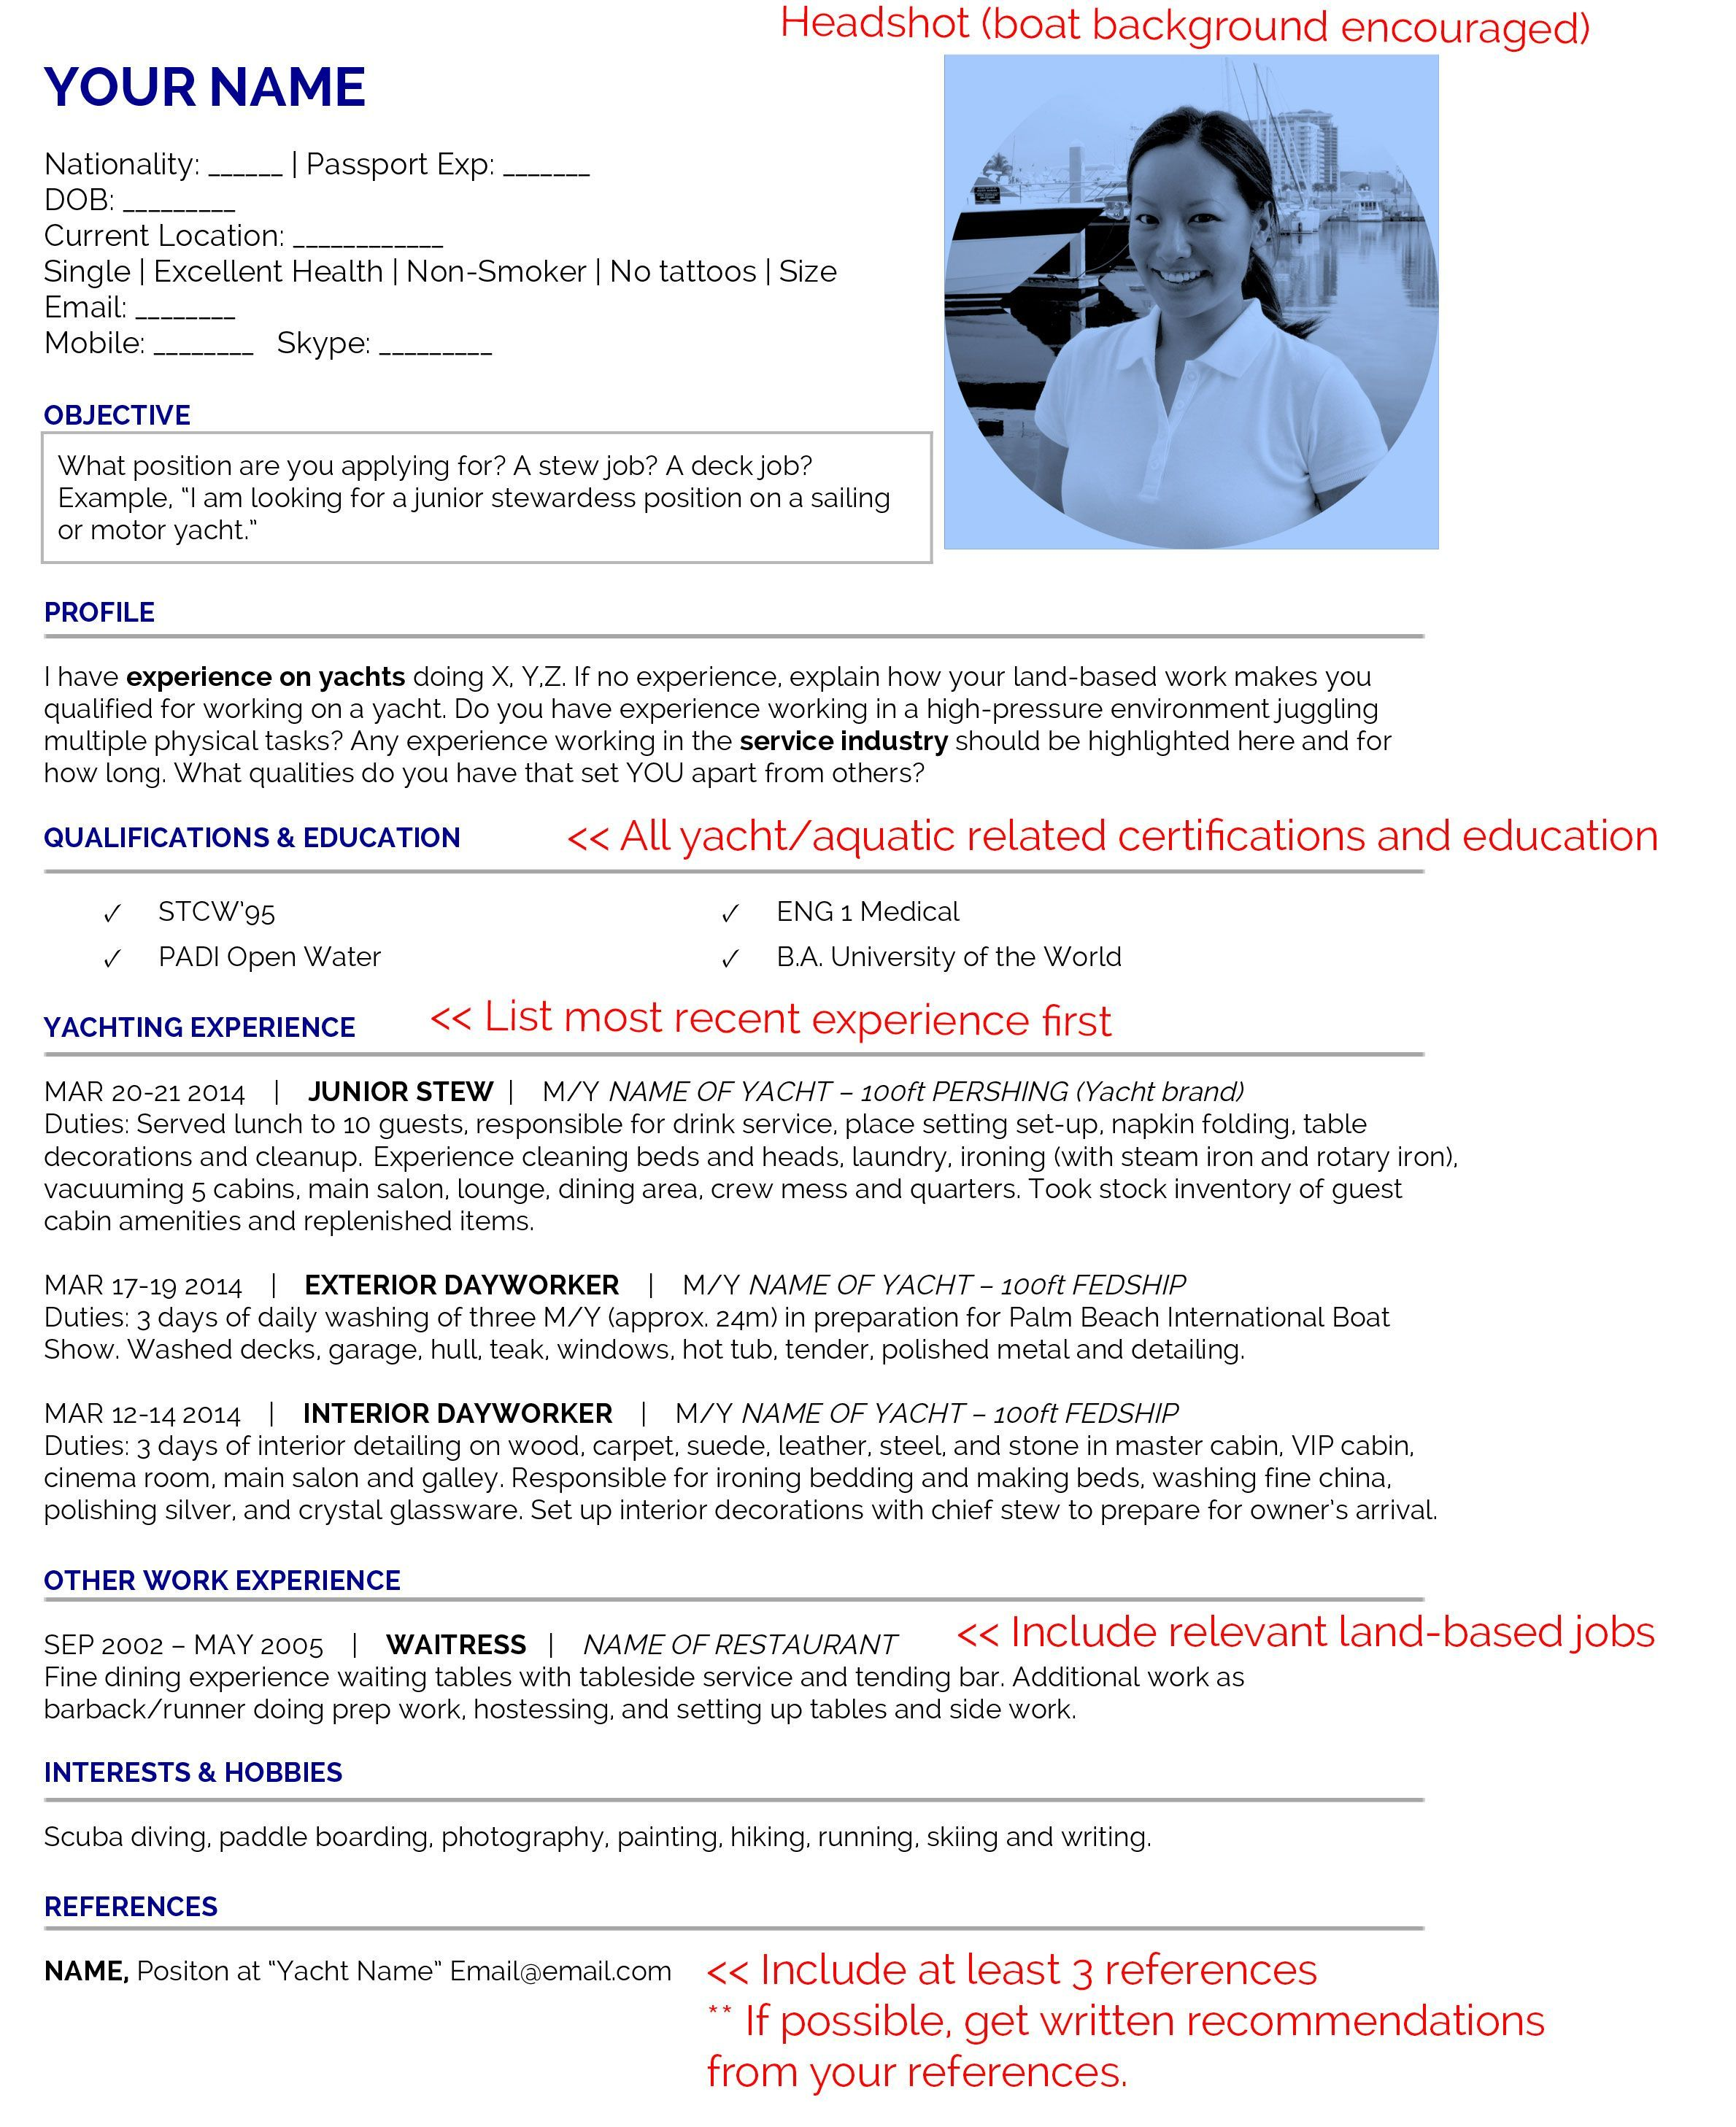 Cv Template Yacht Crew Resume Format Cv Template What Is Positive Yacht